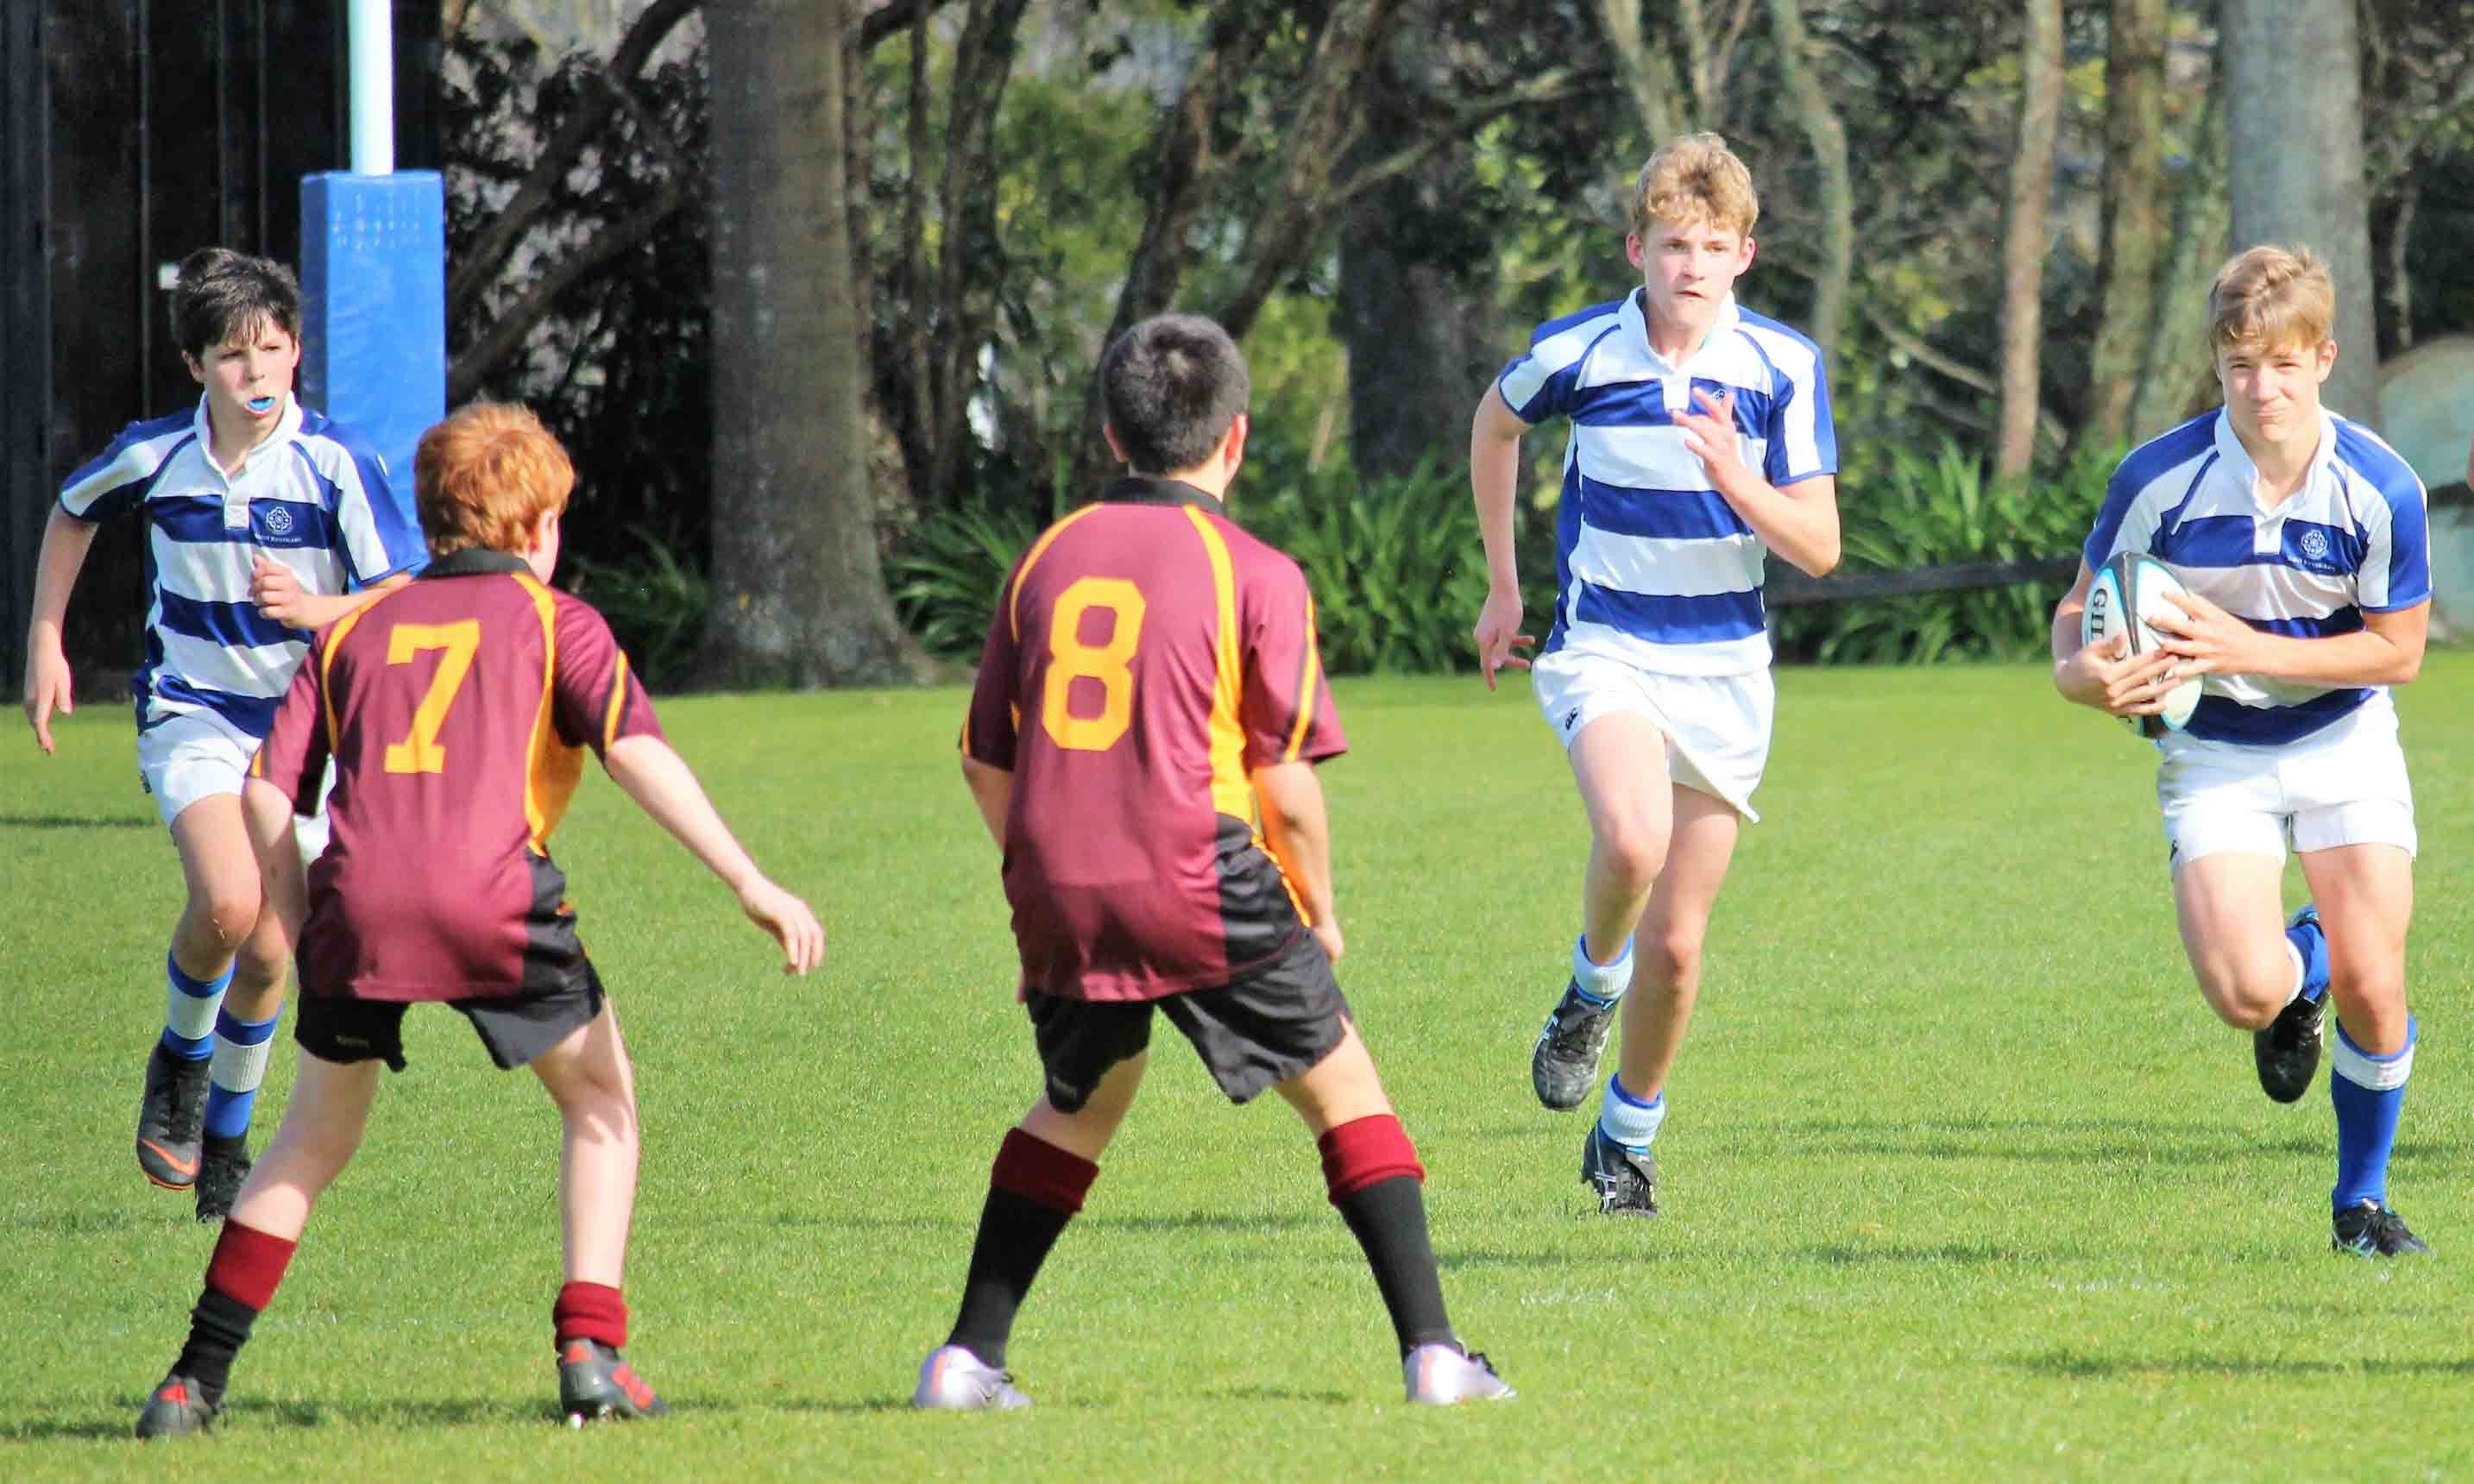 Saint-Kentigern-Boys'-School-Sports-Rugby.jpg